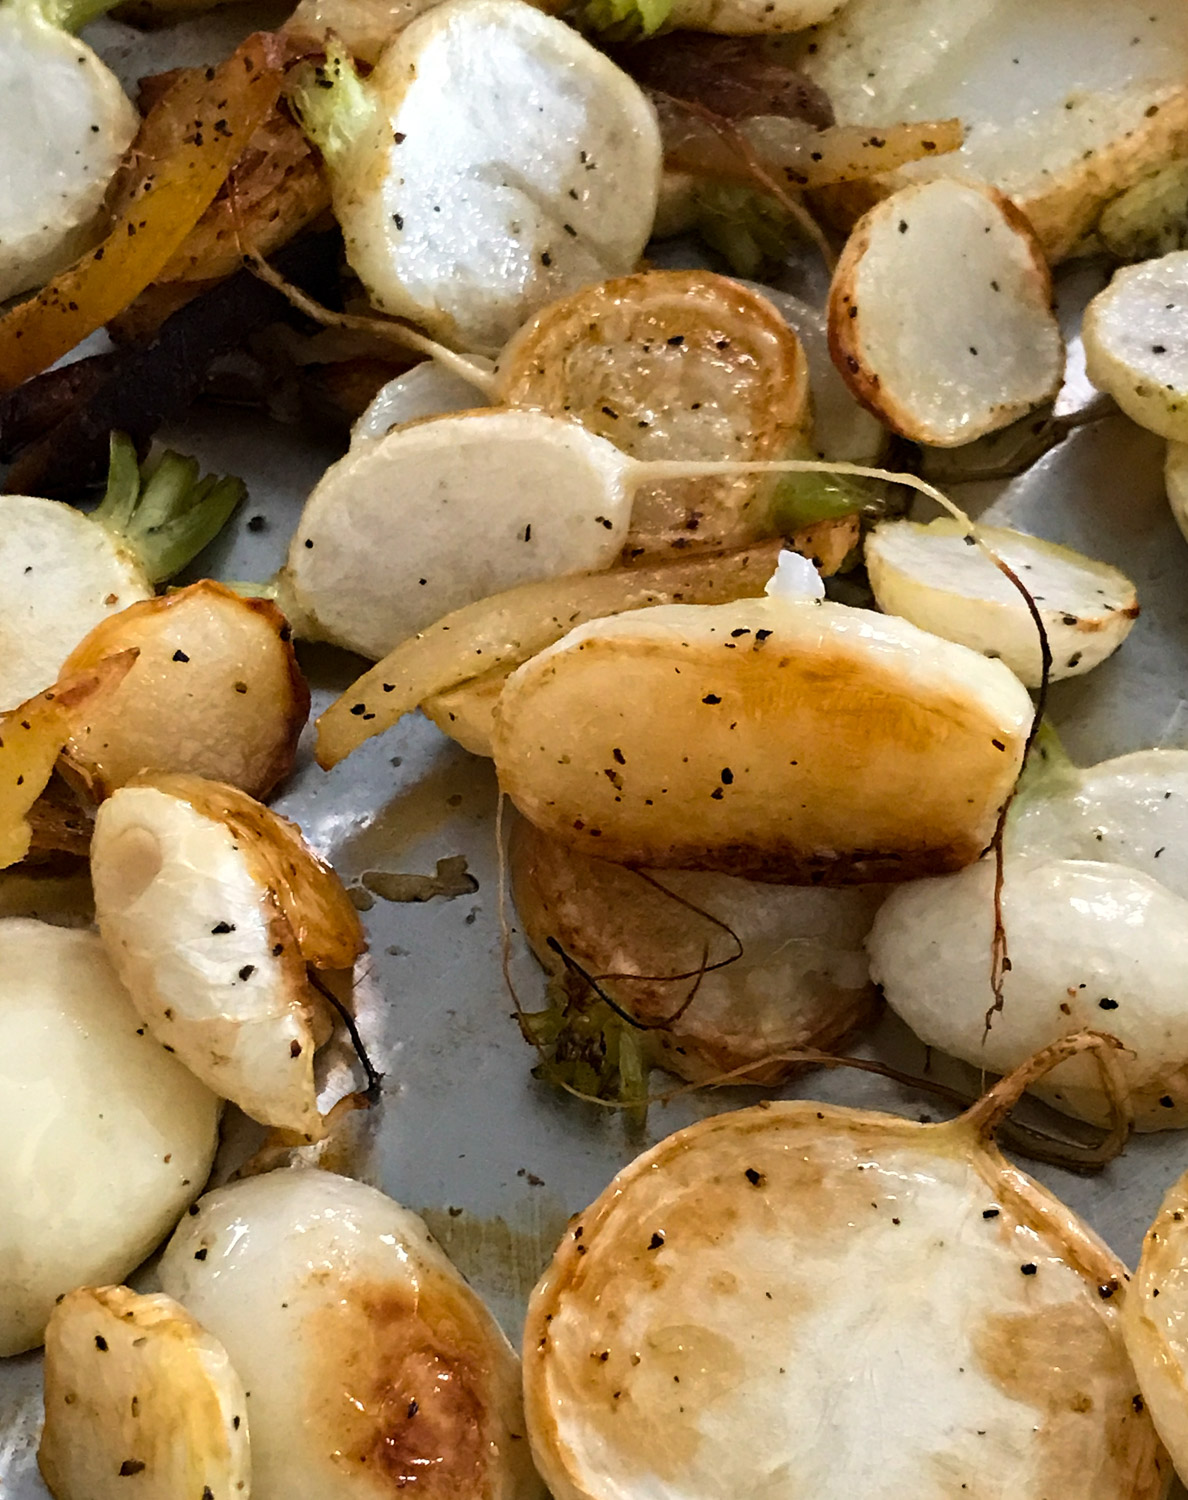 Roasted turnips with preserved lemon.